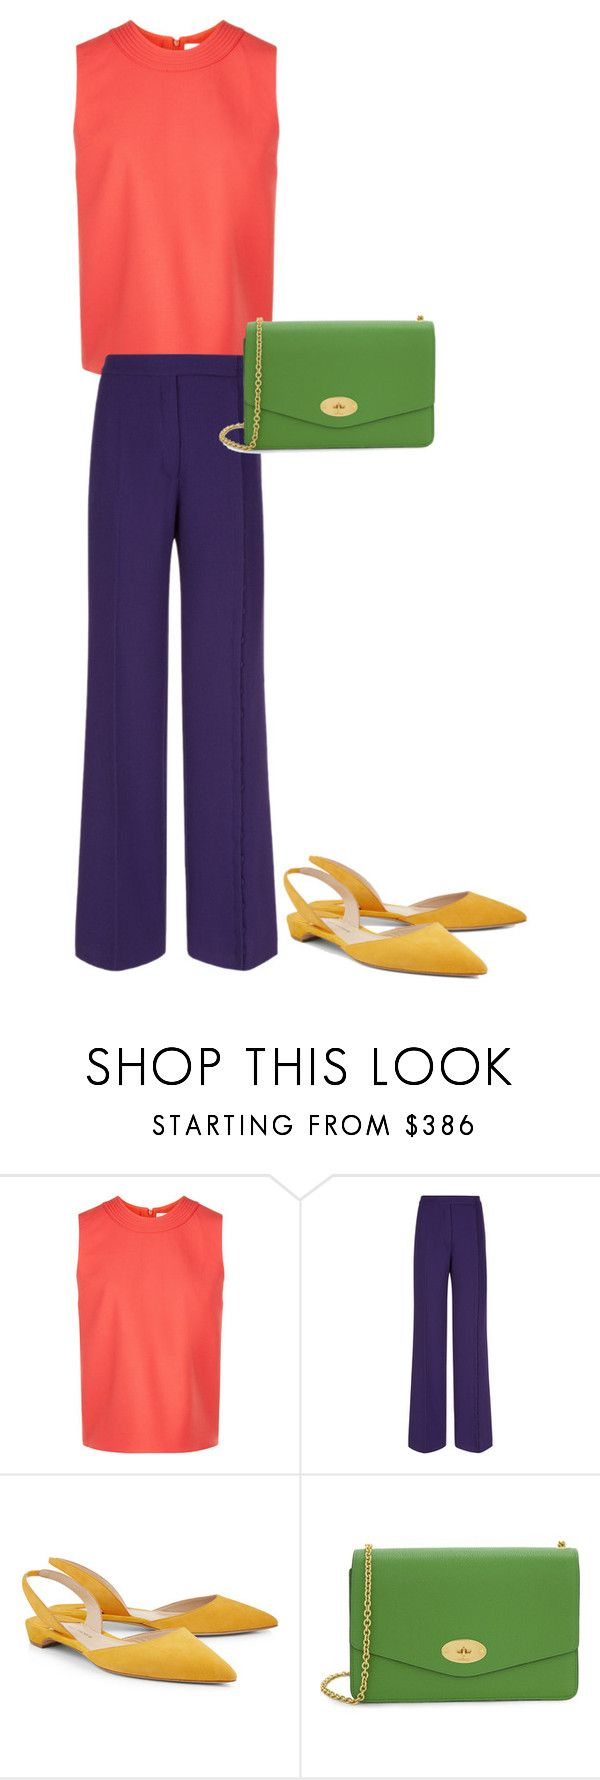 """""""16"""" by asvetik on Polyvore featuring мода, Victoria, Victoria Beckham, Marco de Vincenzo, Paul Andrew и Mulberry"""